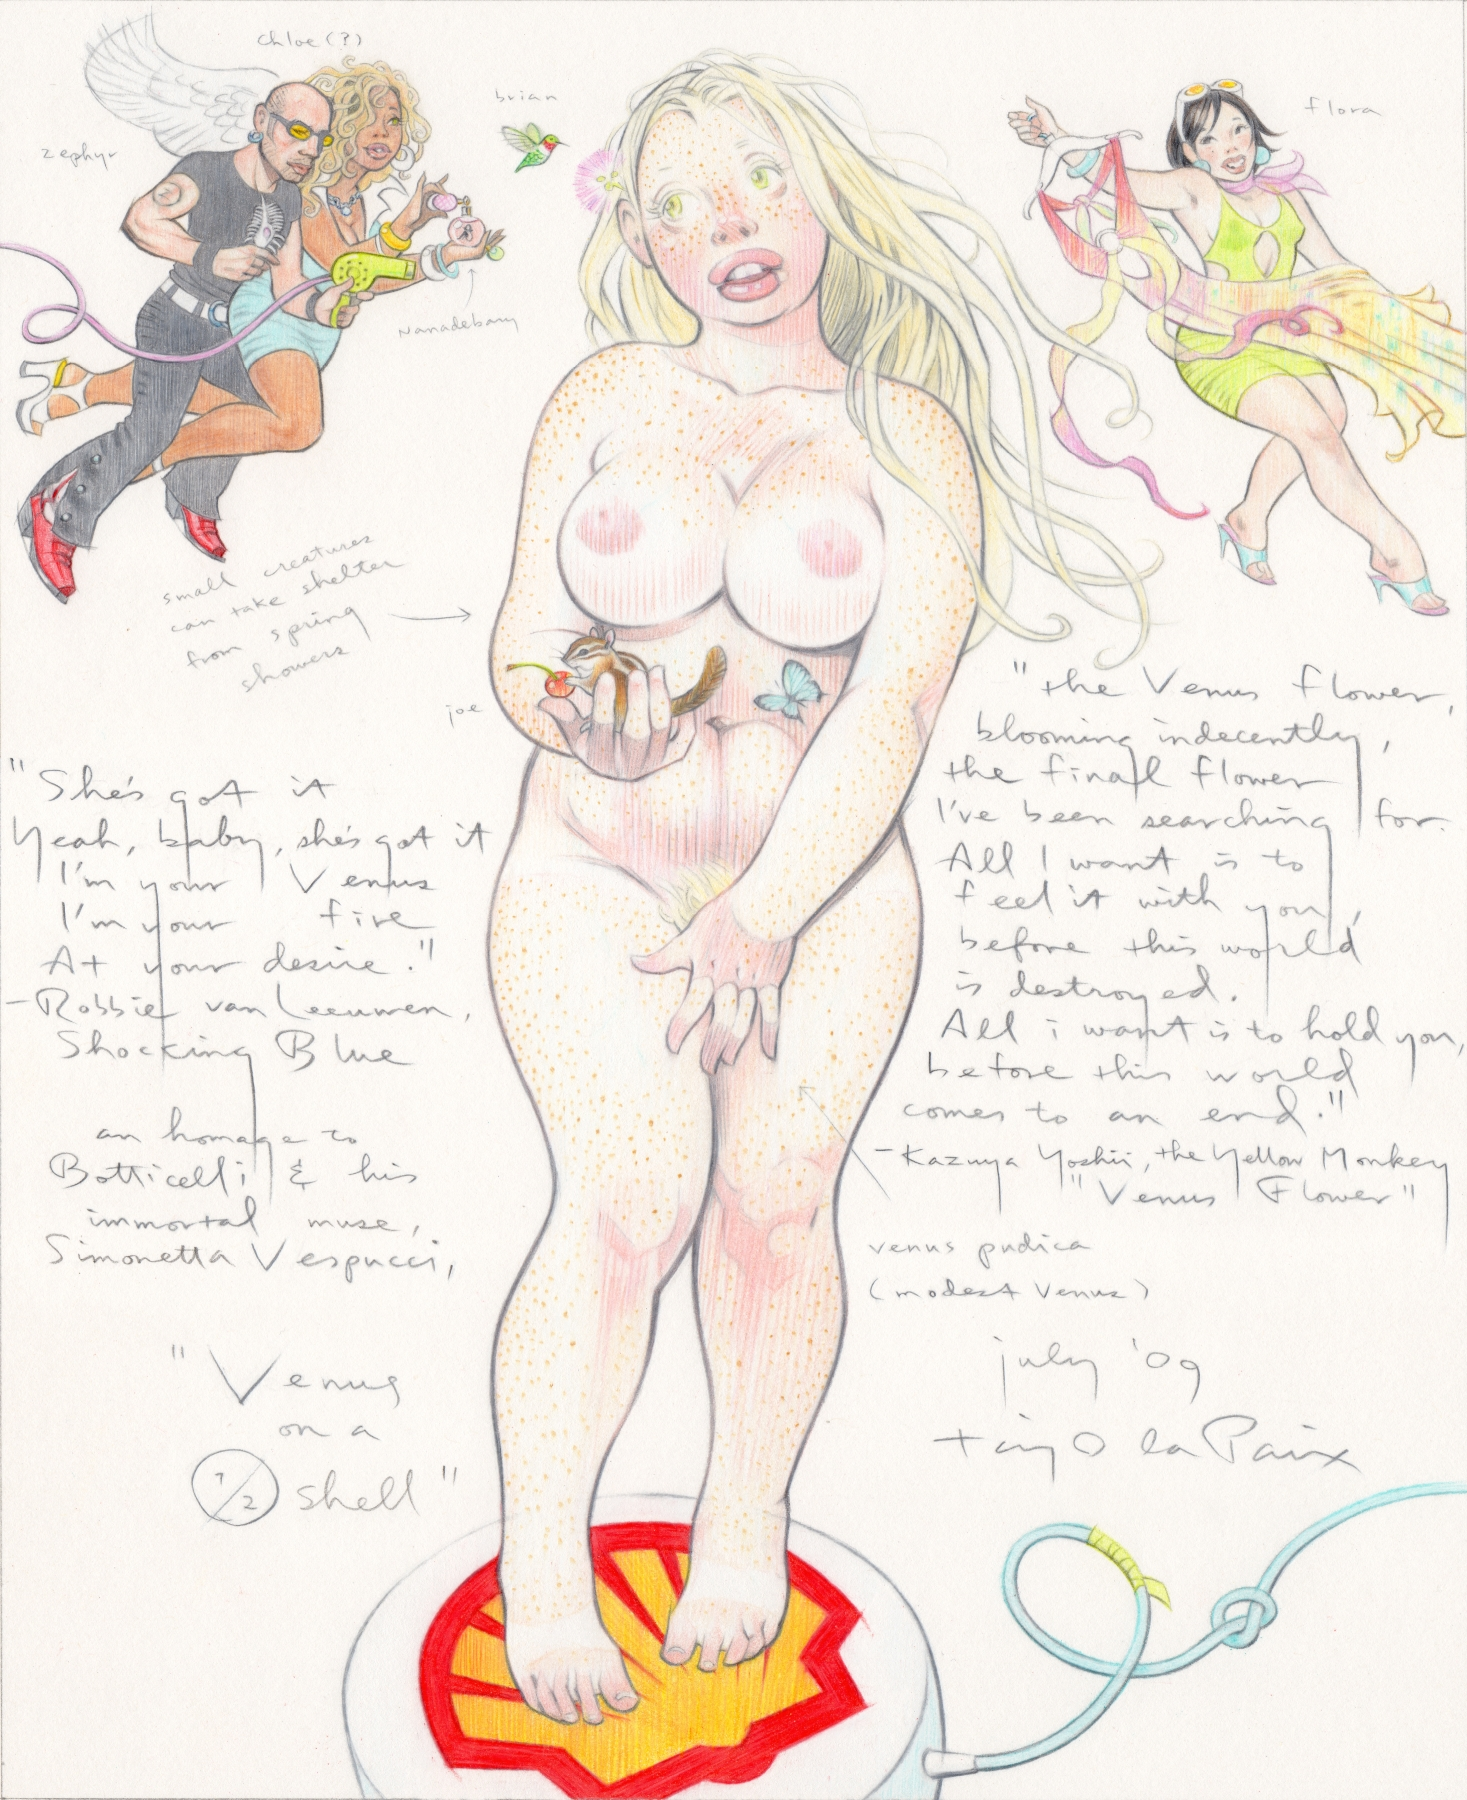 Taiyo La Paix's Muses: venus-on-a-halfshell-2009-pencil-on-paper-12-x-10-inches.JPG